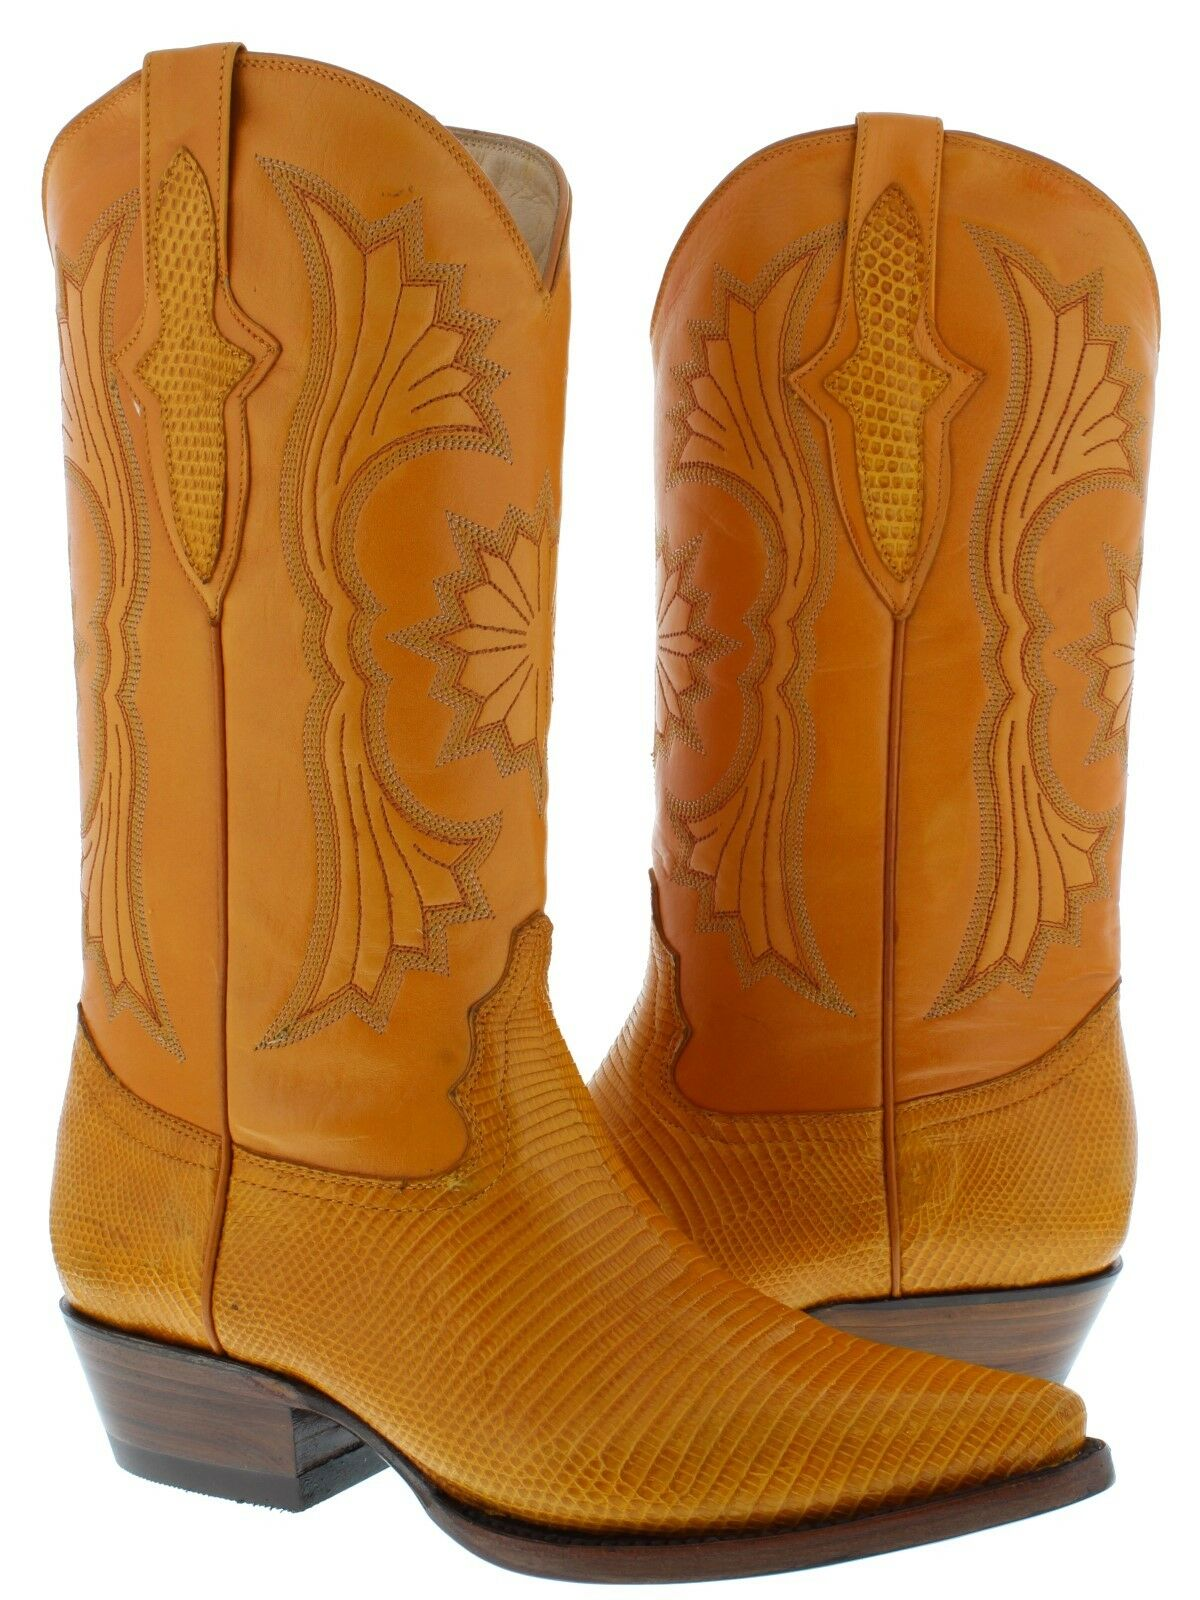 Mens Yellow Butter Genuine Lizard Armadillo Skin Leather Vintage Cowboy Boots J